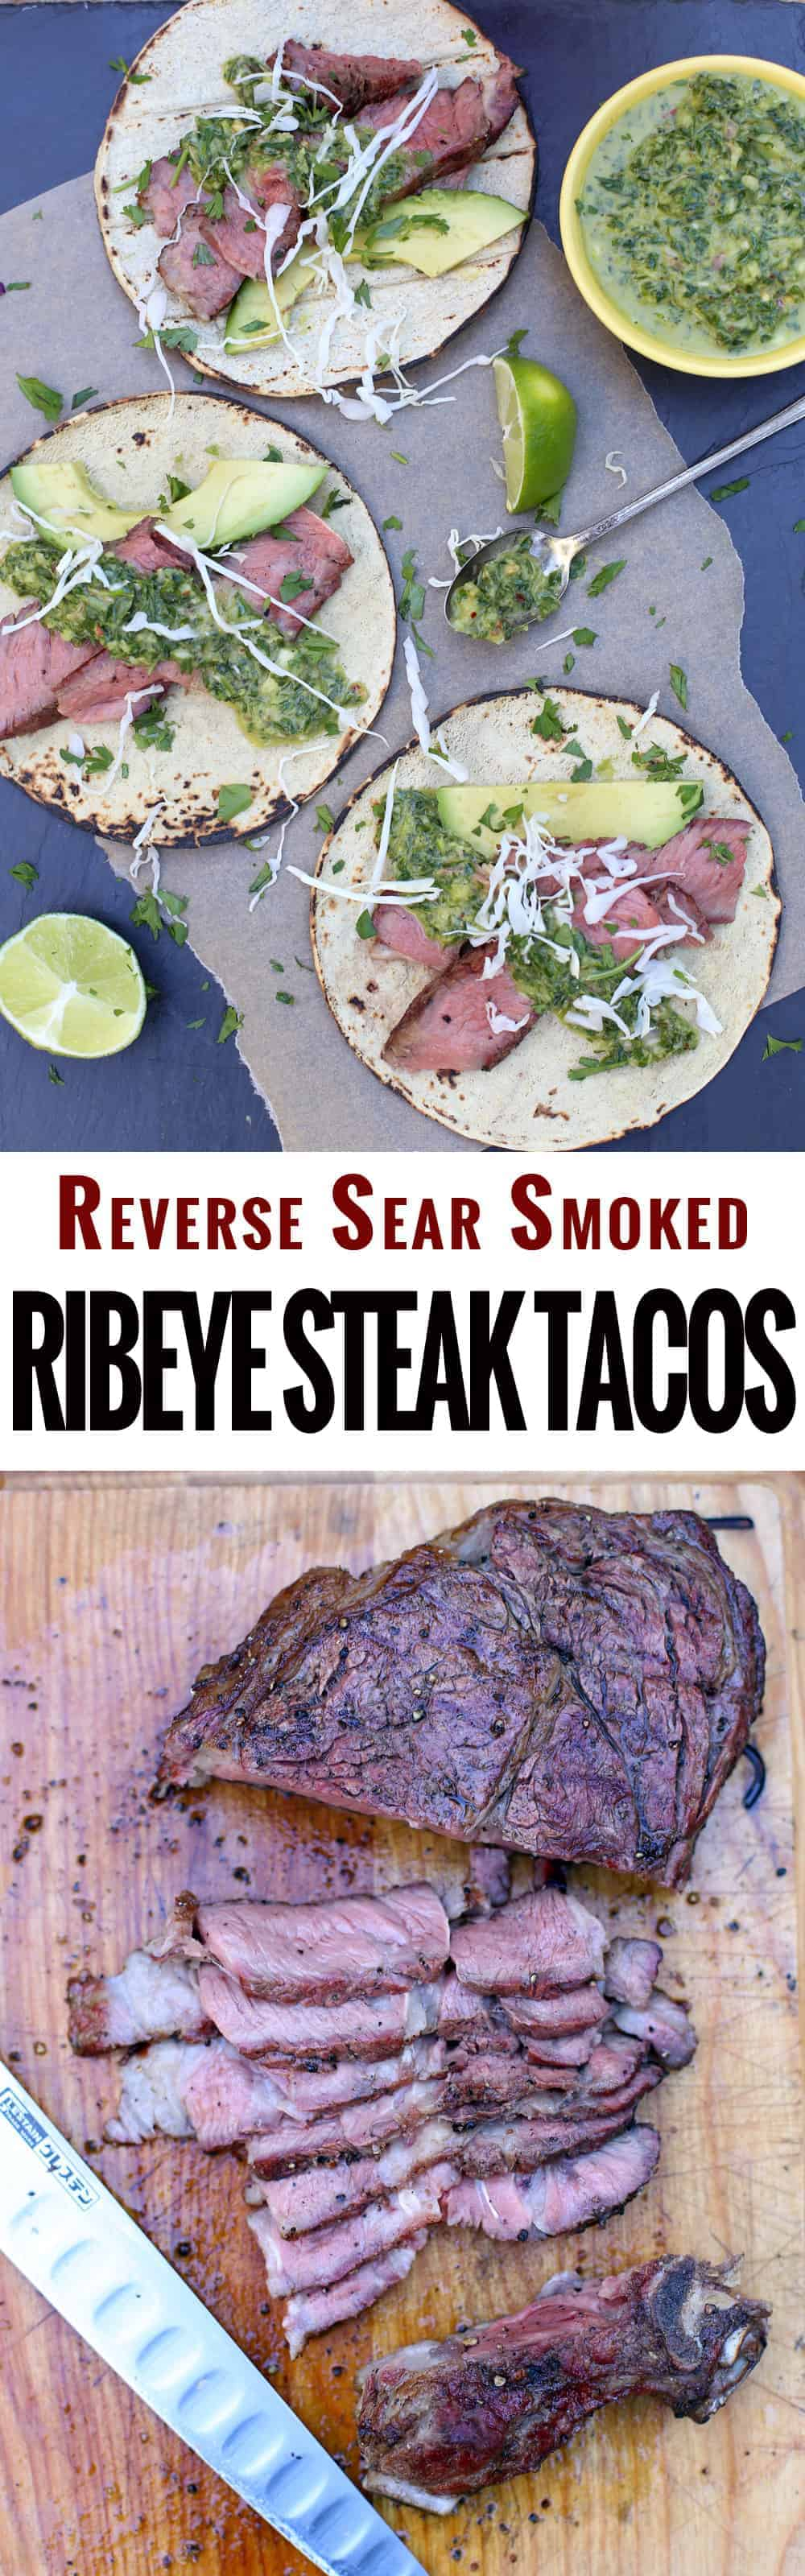 Reverse Sear and Smoked Ribeye Steak Tacos. How to stretch your dollar with steak without skimping on quality